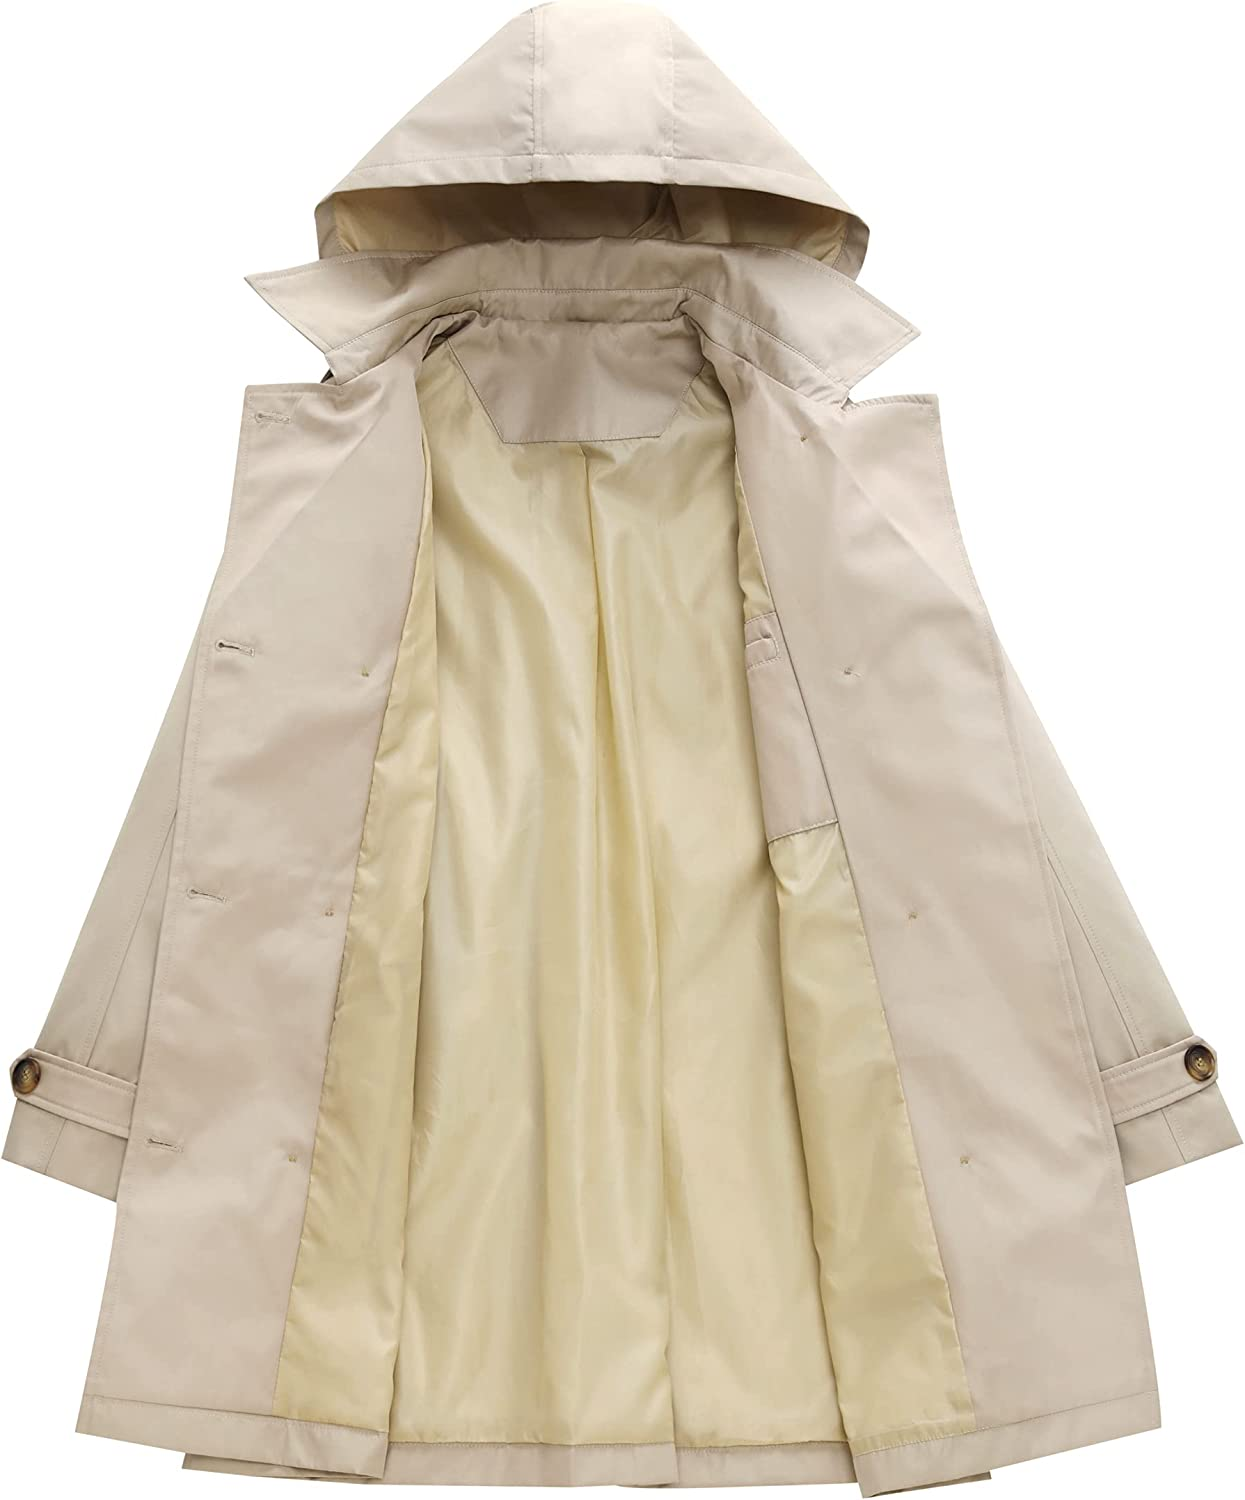 Women's Double Breasted Trench Coats Mid-Length Belted Overcoat Long Dress Jacket with Detachable Hood